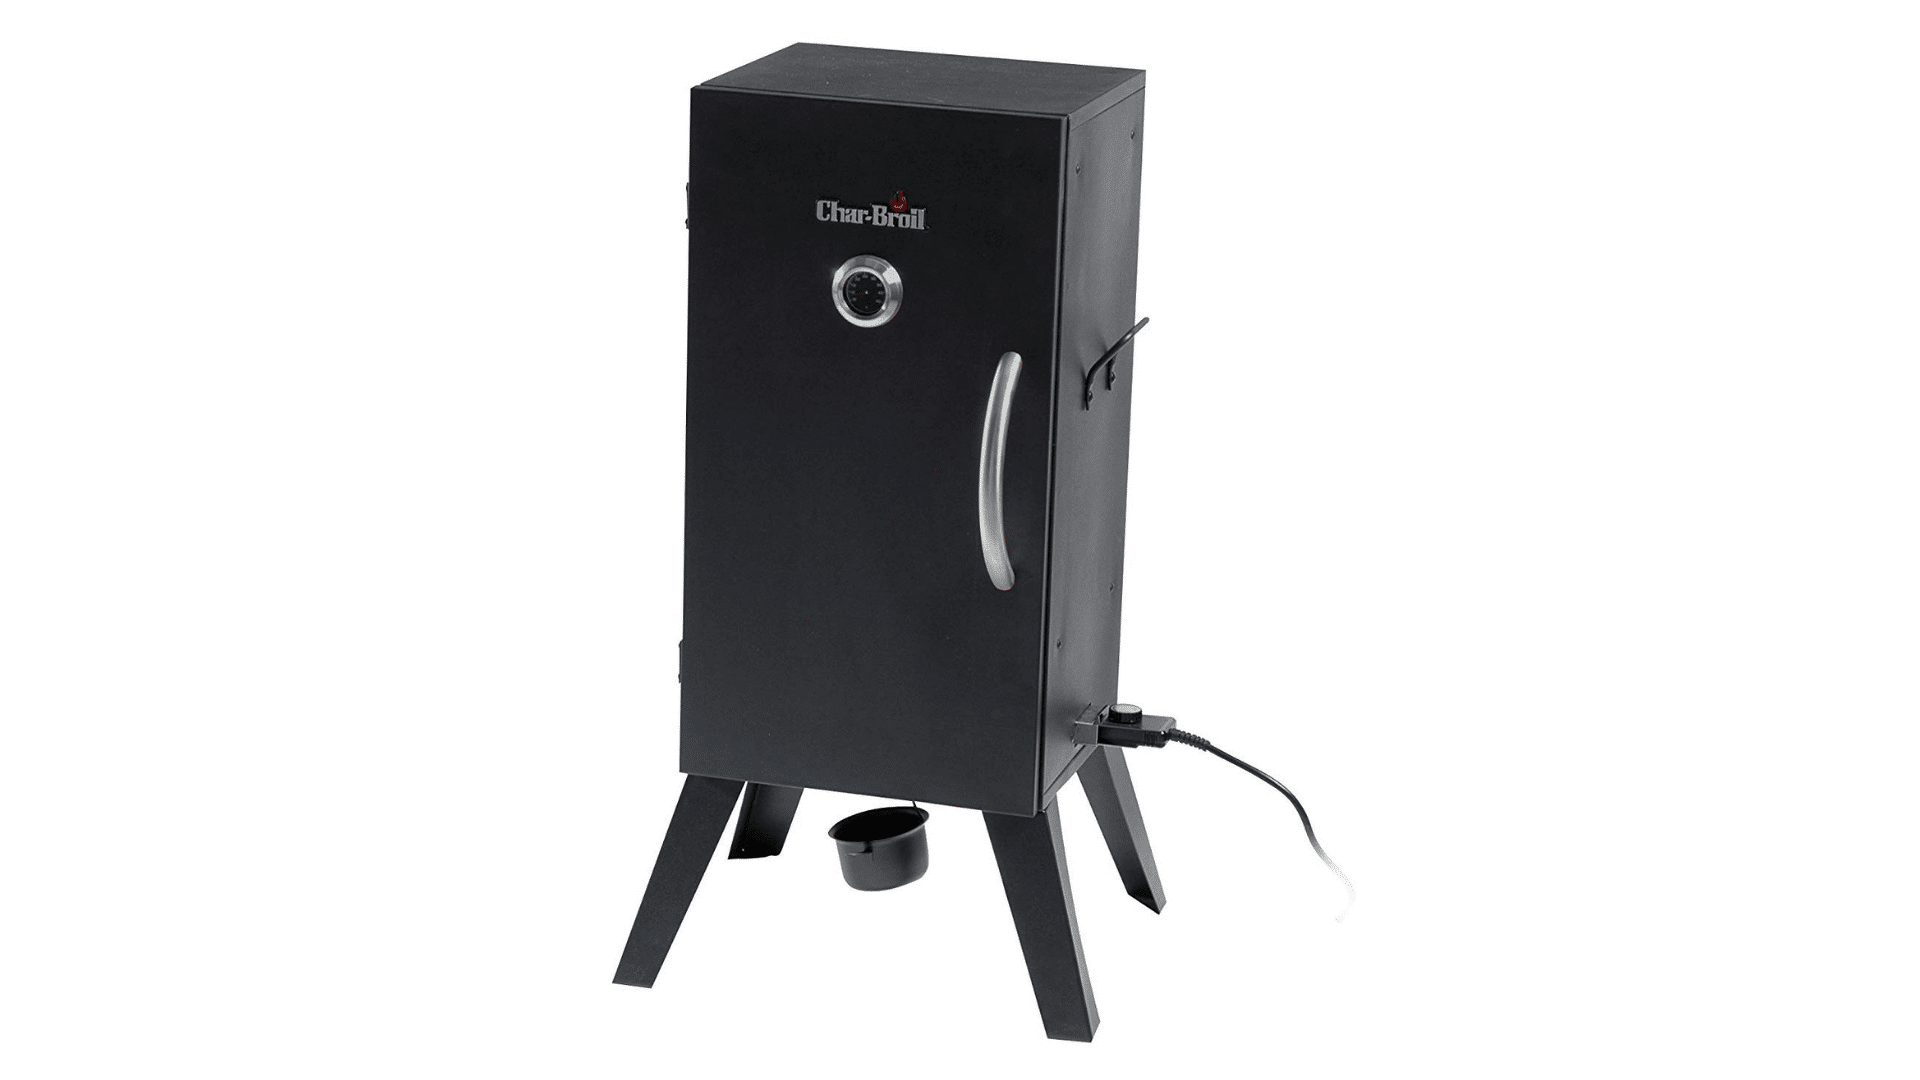 product image of Char-Broil Vertical Electric Smoker